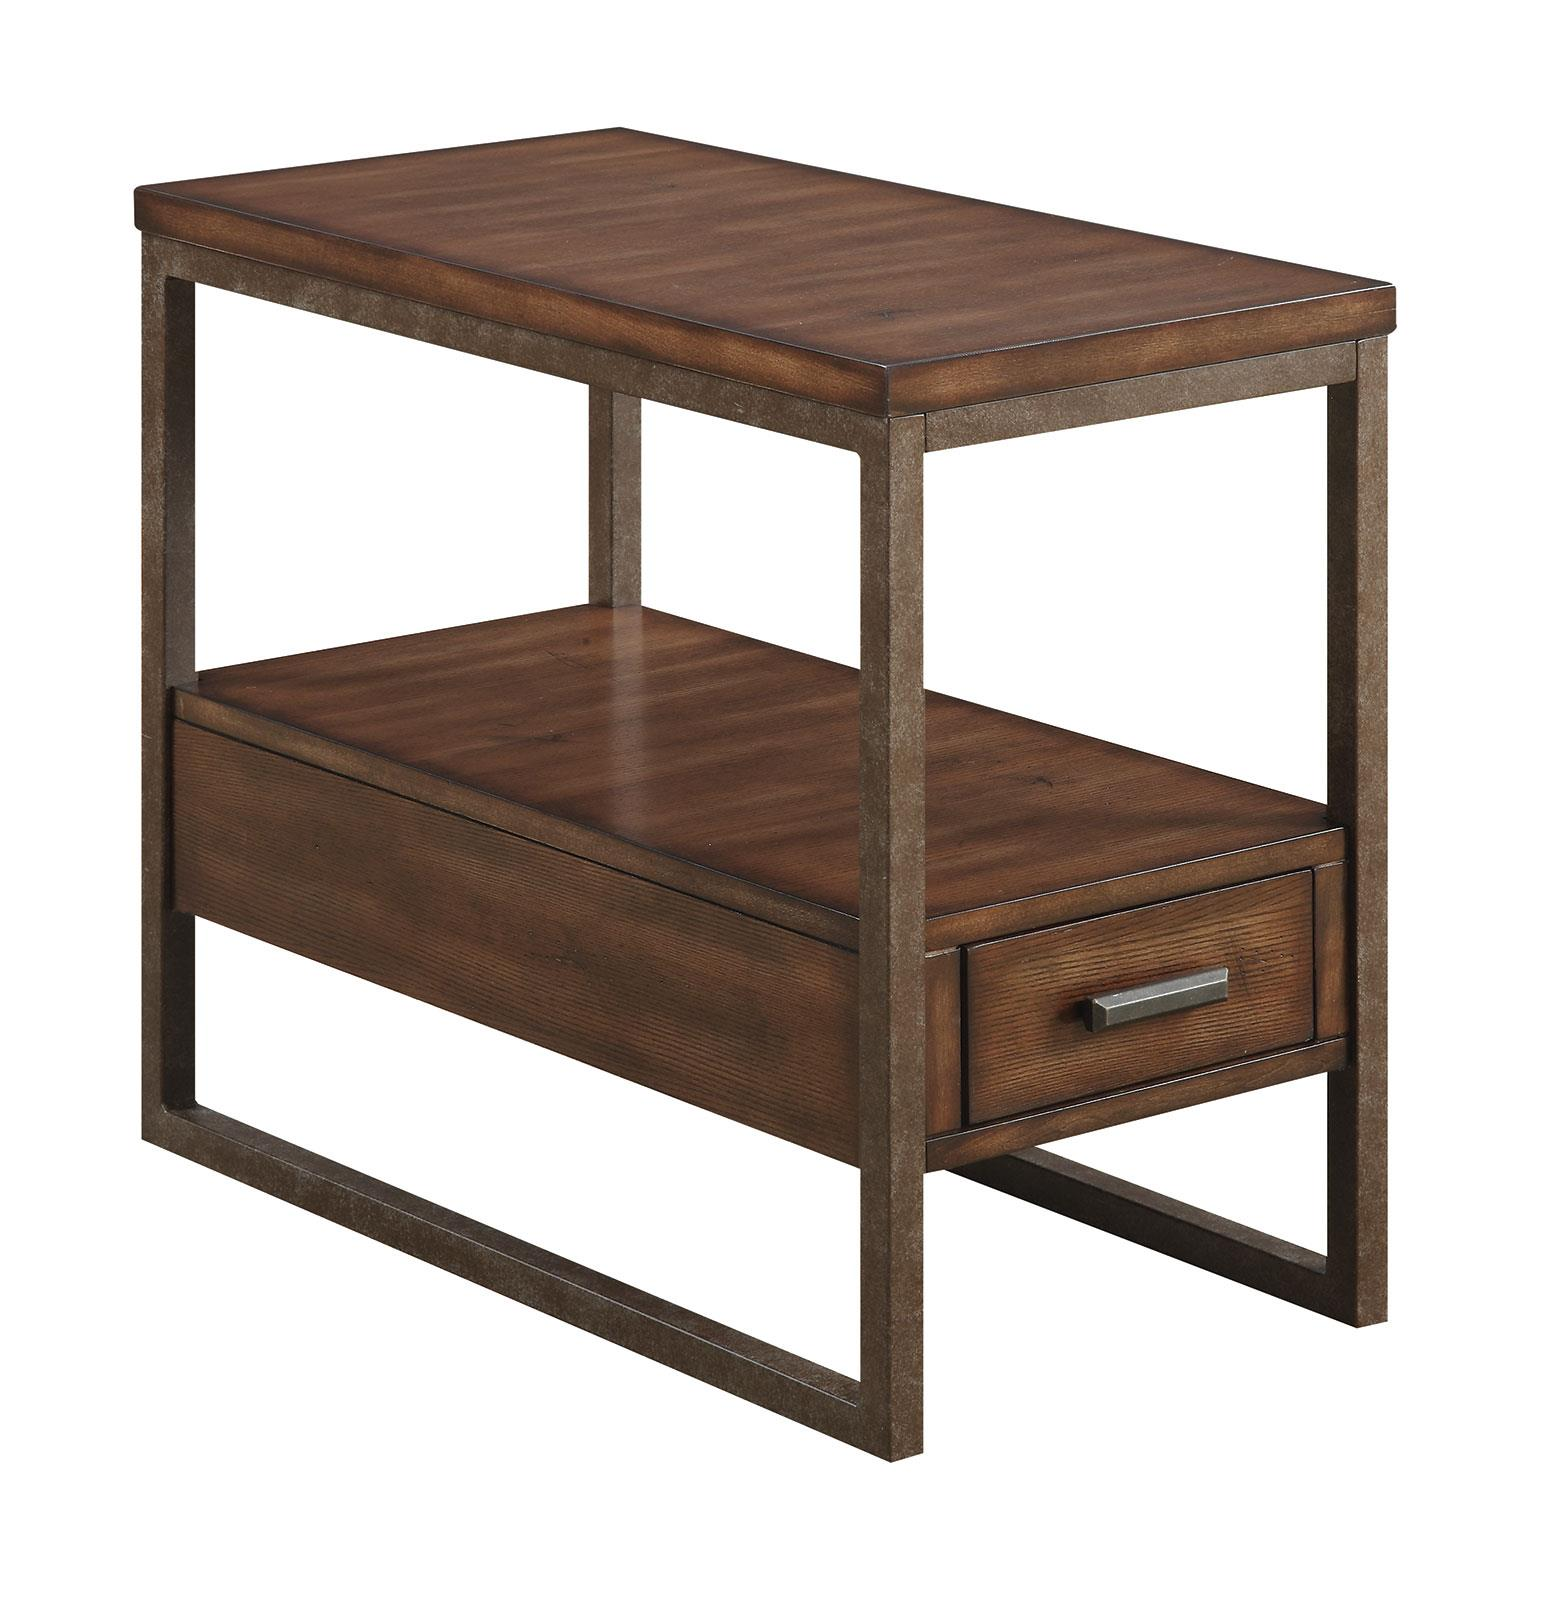 Coaster 70430 Chairside Table - Item Number: 901680